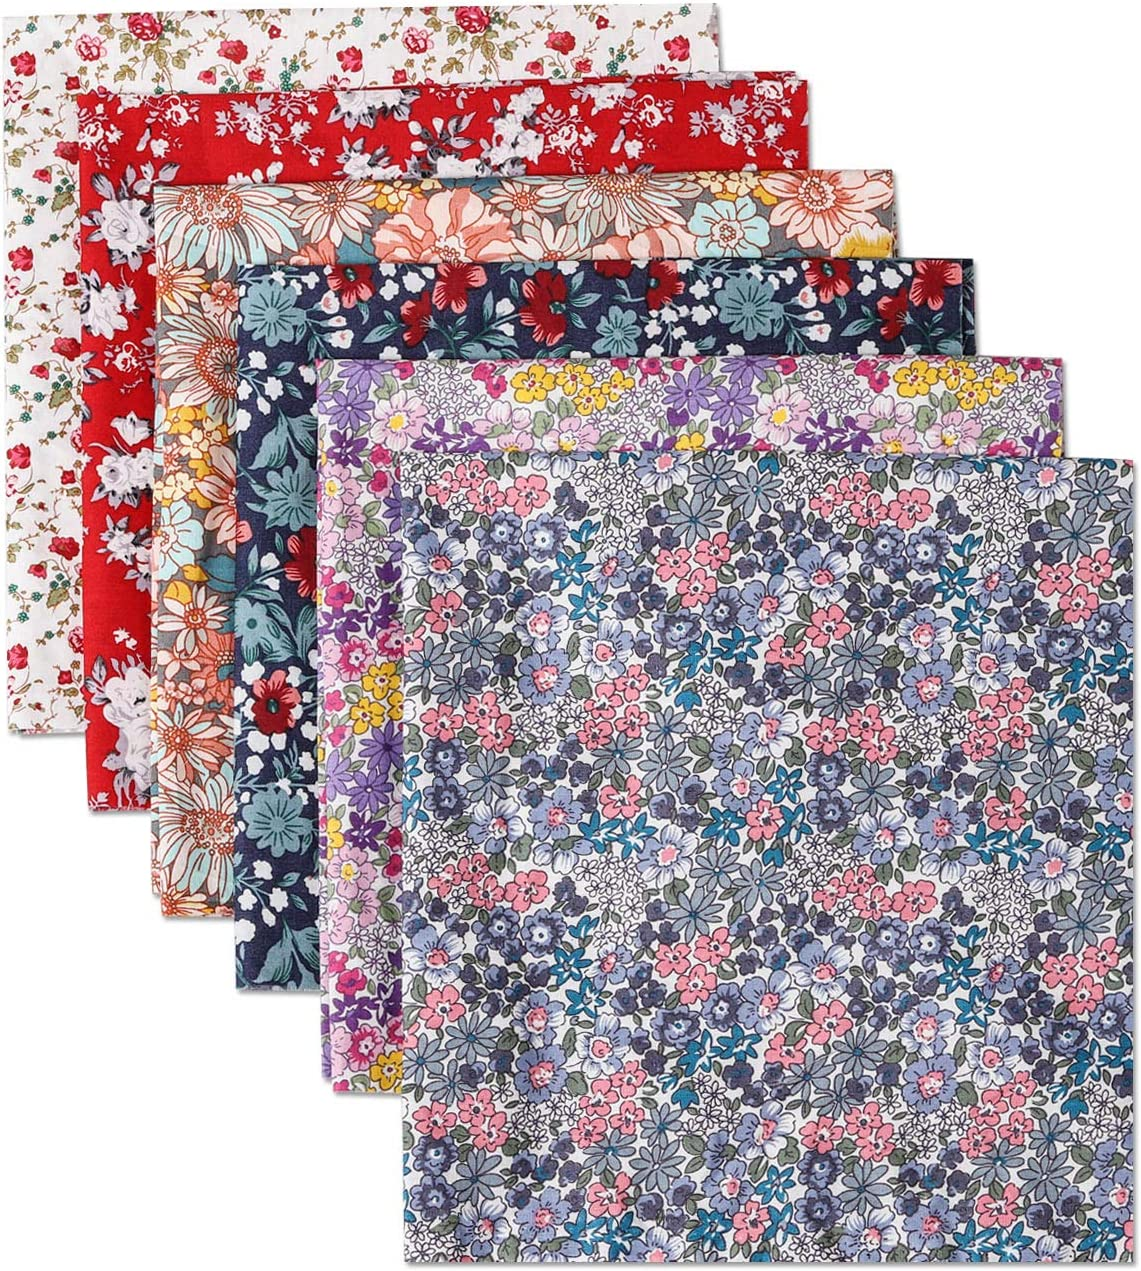 Prettiest Pink IV Fat Quarter Many Fabric Options Available Original Design Printed on Fabric 70 x 50cms